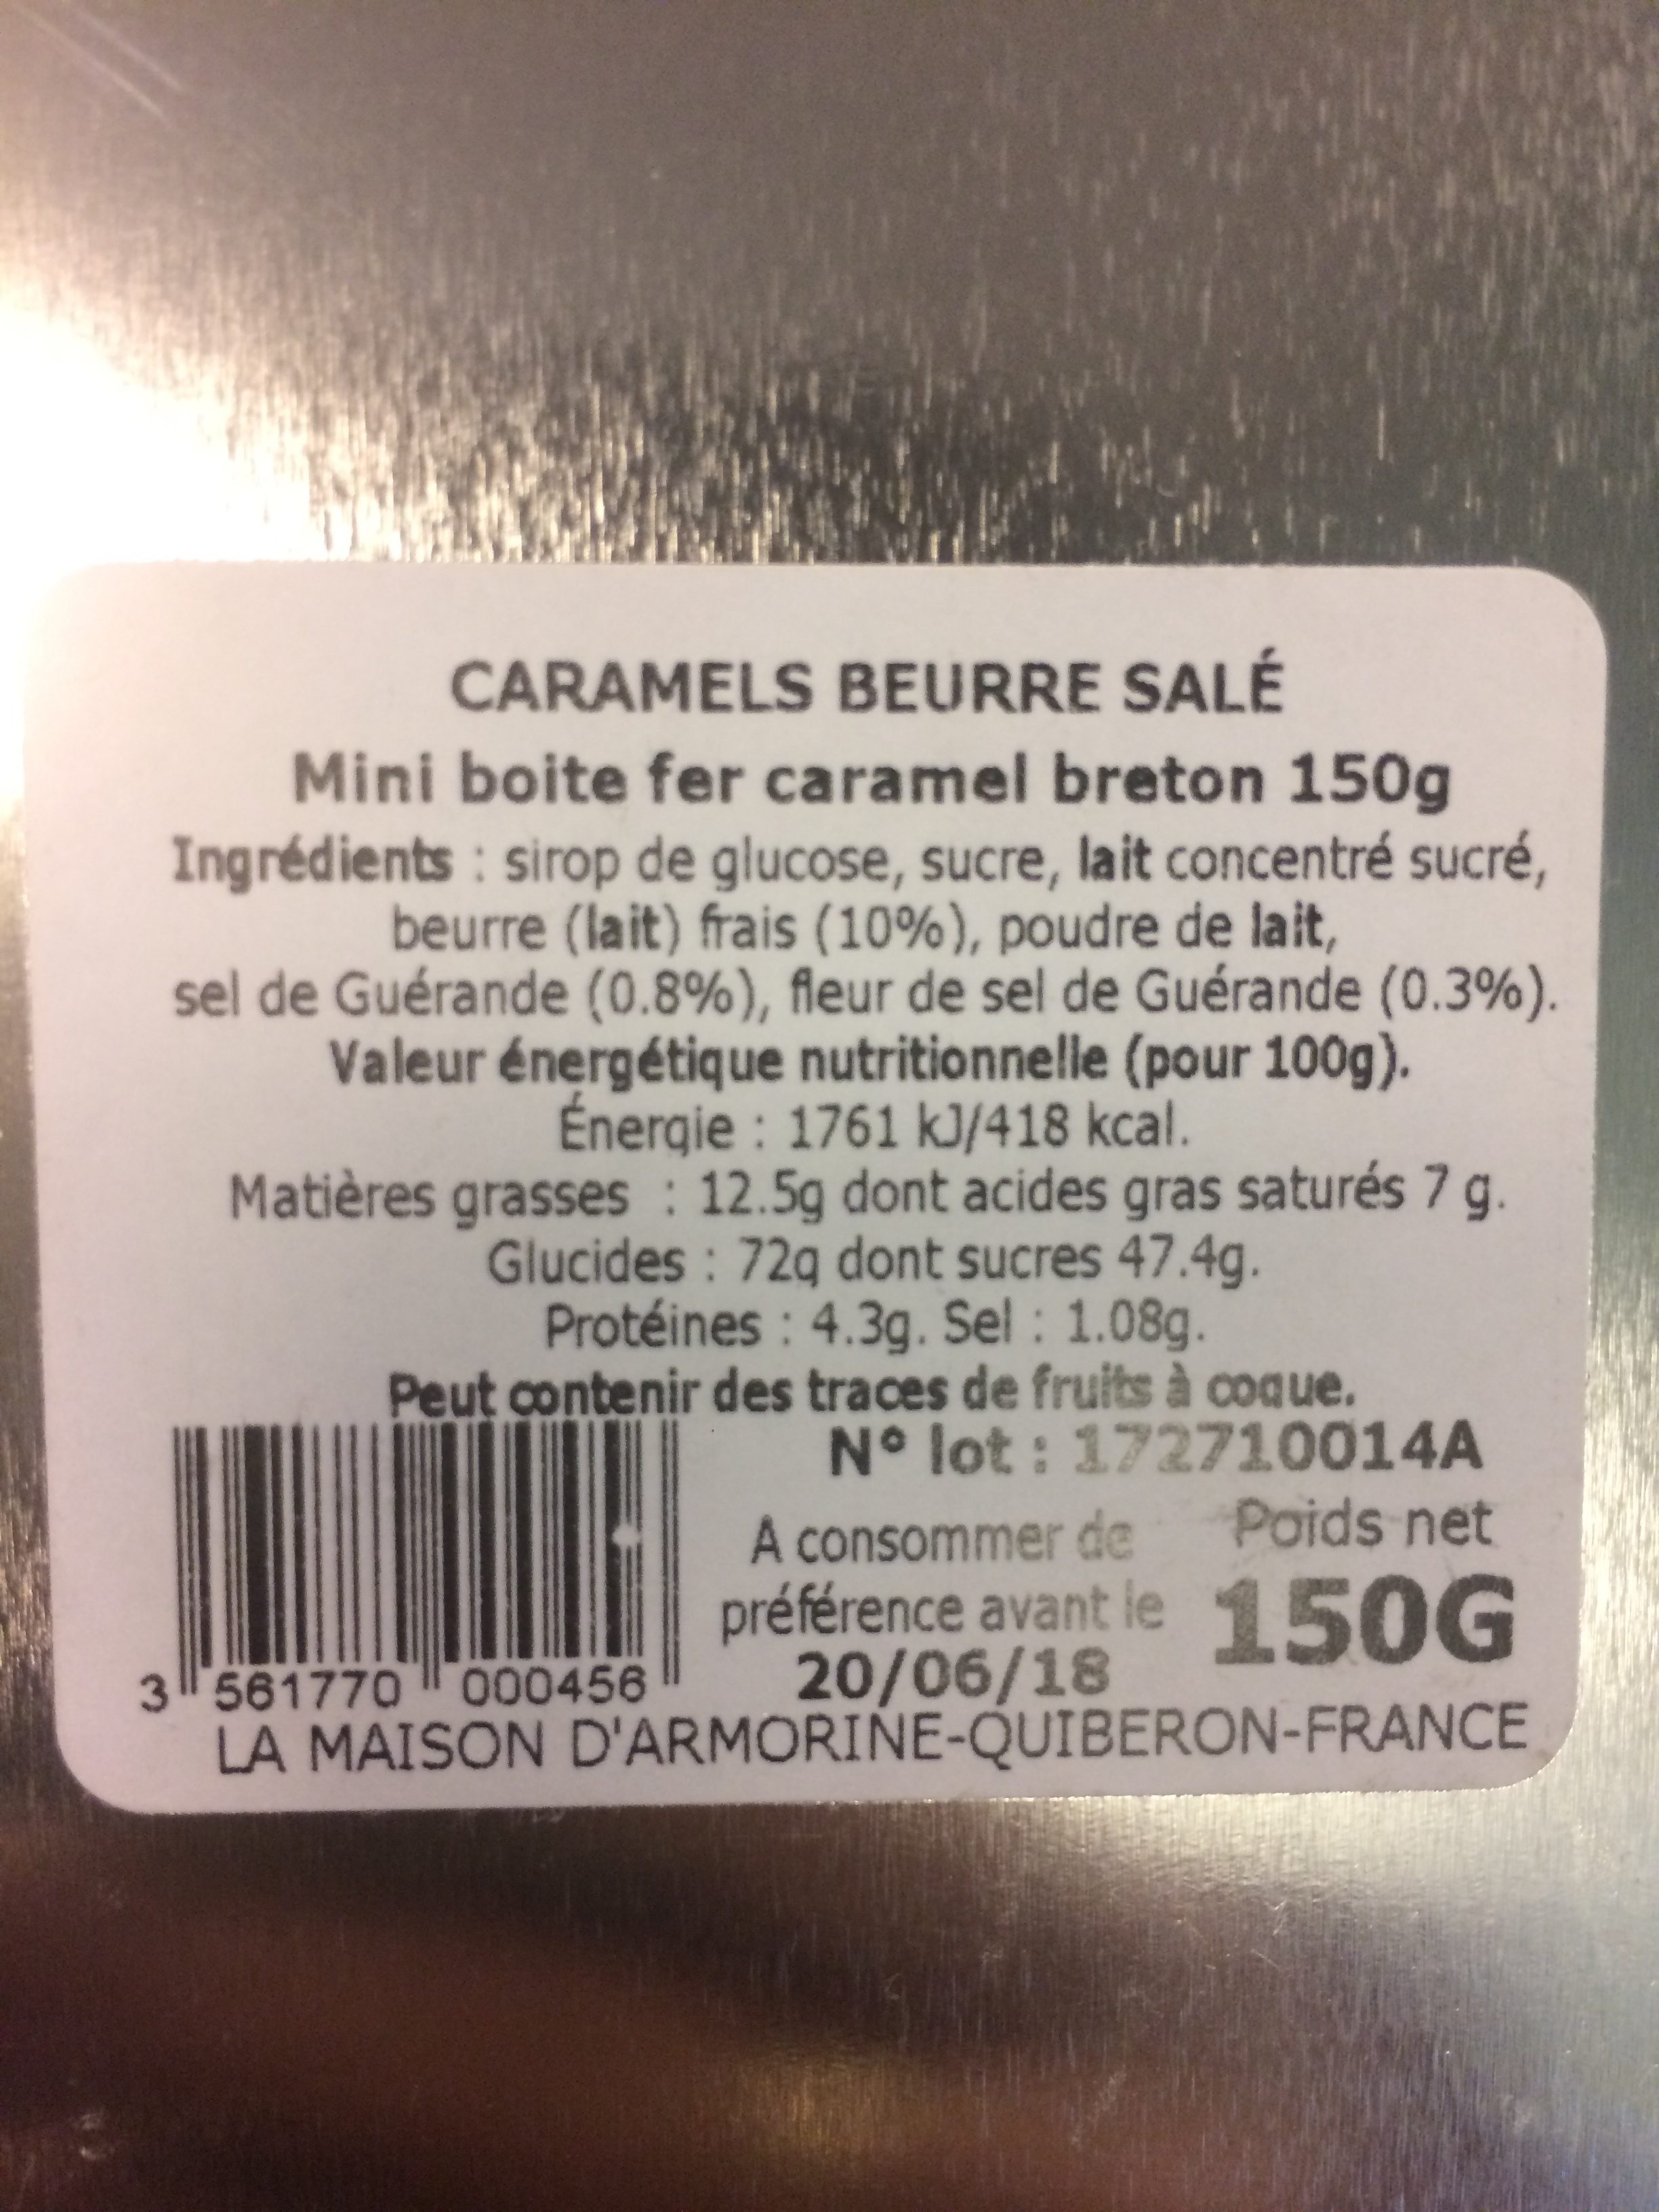 Caramel  beurre  salé - Ingredients